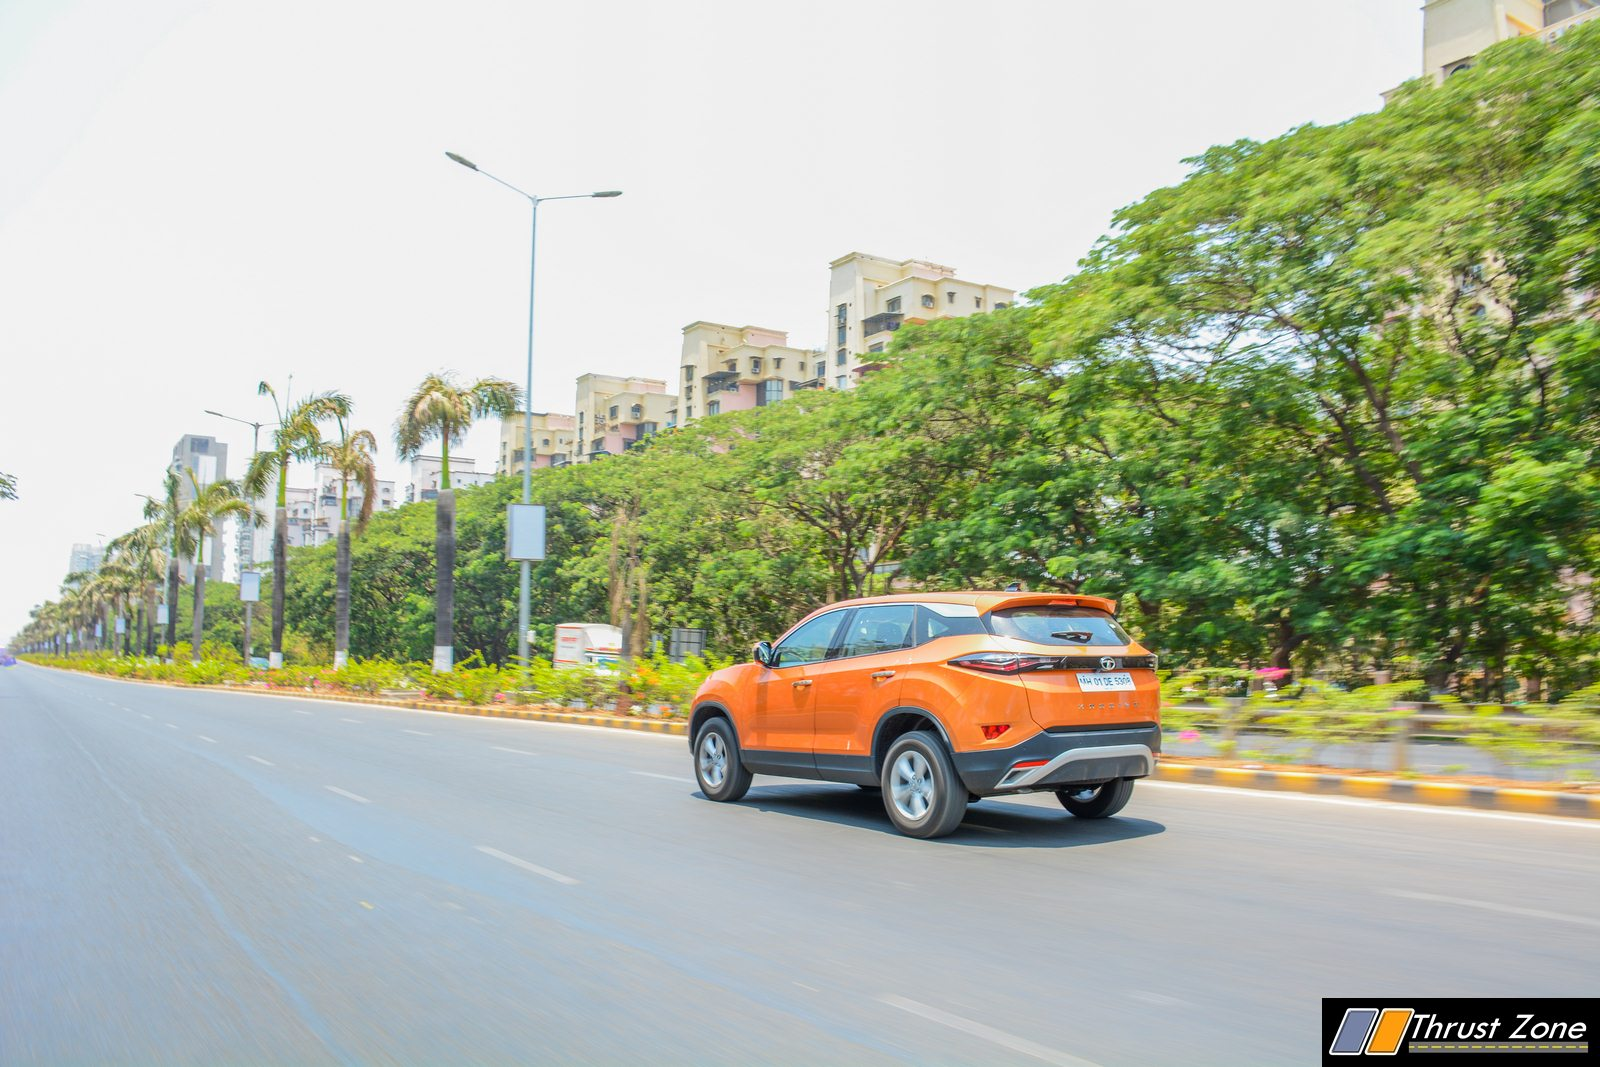 https://www.thrustzone.com/wp-content/uploads/2019/06/2019-Tata-harrier-diesel-manual-review-23.jpg